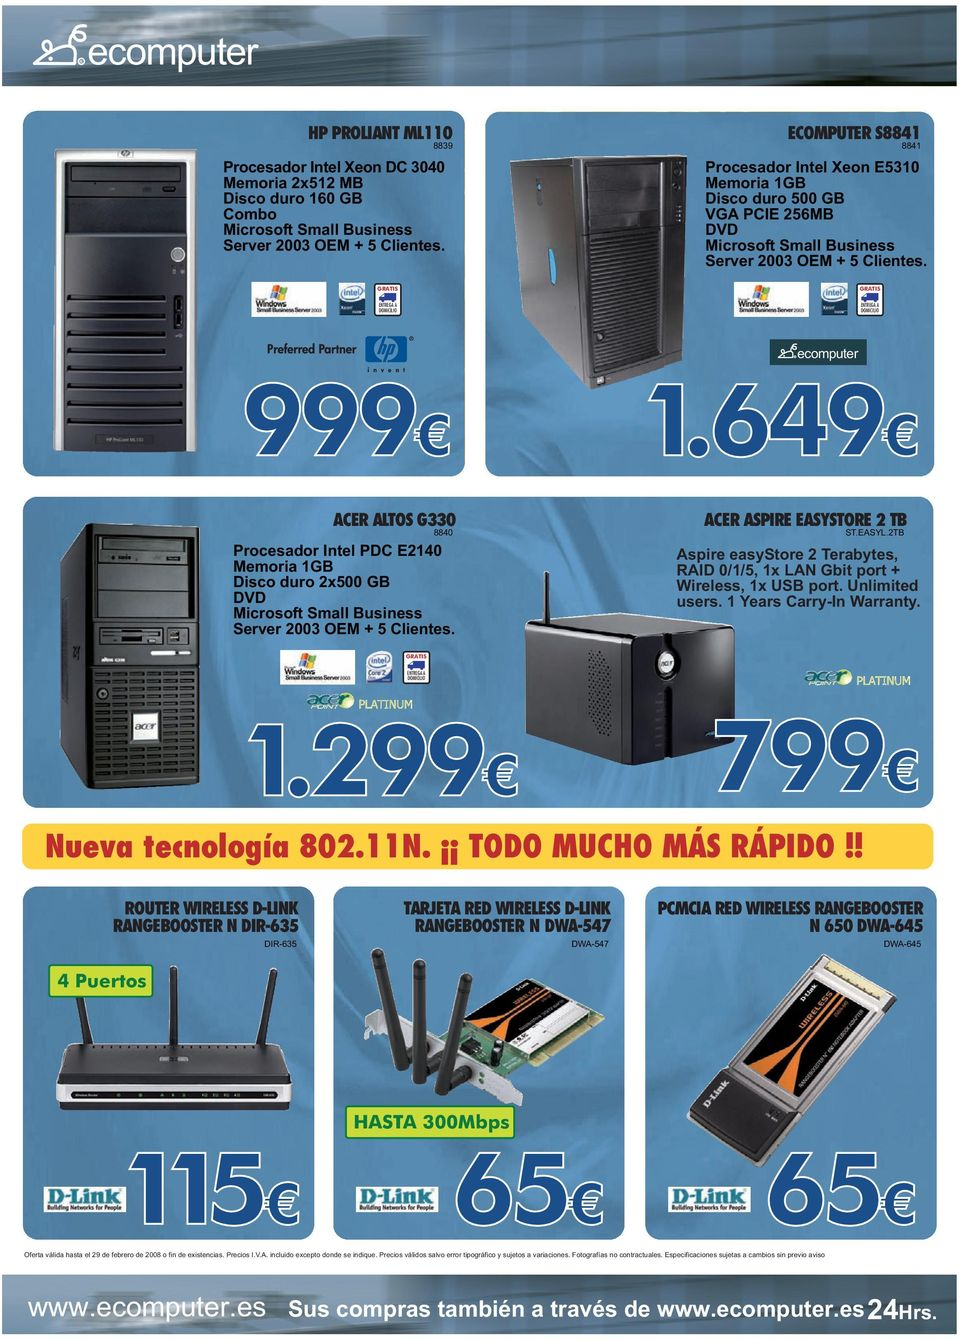 649 ACE ALTOS G330 ACE ASPIE EASYSTOE 2 TB 8840 ST.EASYL.2TB Procesador Intel PDC E2140 Memoria 1GB Disco duro 2x500 GB DVD Microsoft Small Business Server 2003 OEM + 5 Clientes.